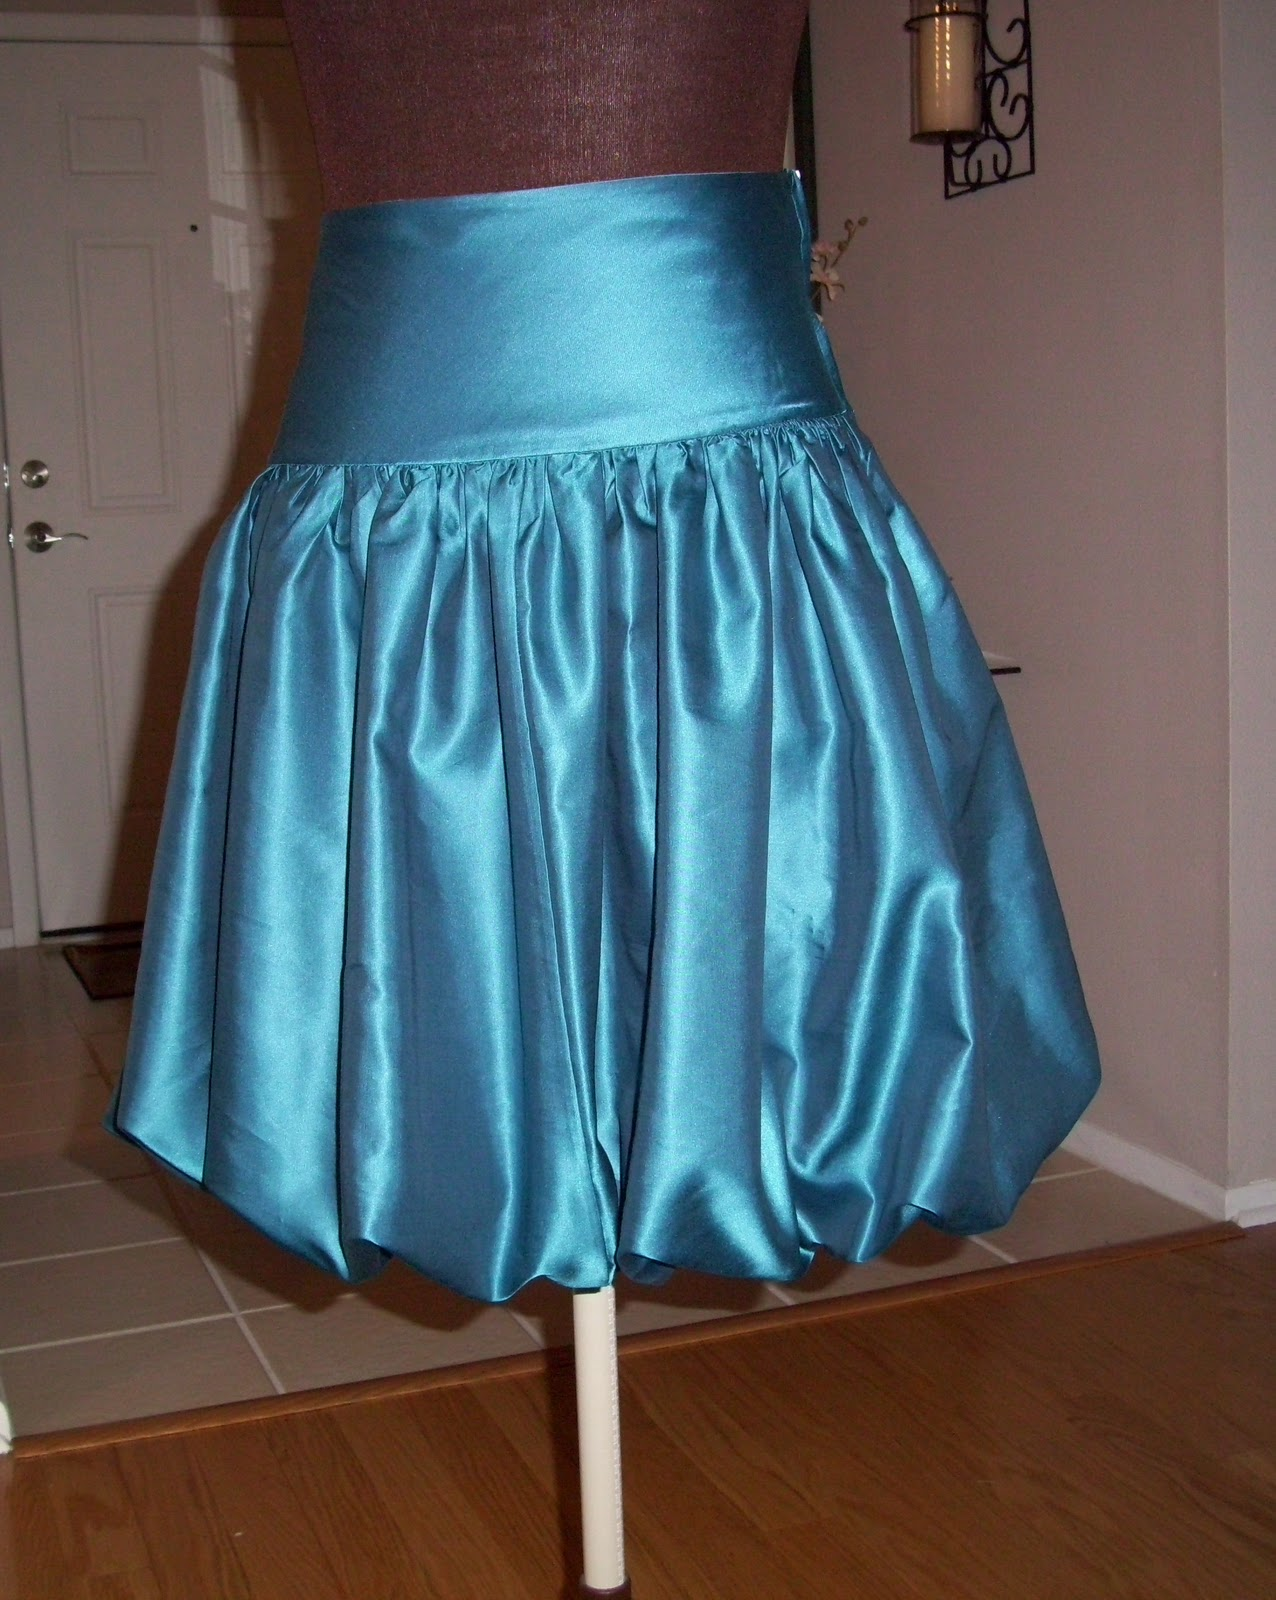 How to Make Balloon Skirts?